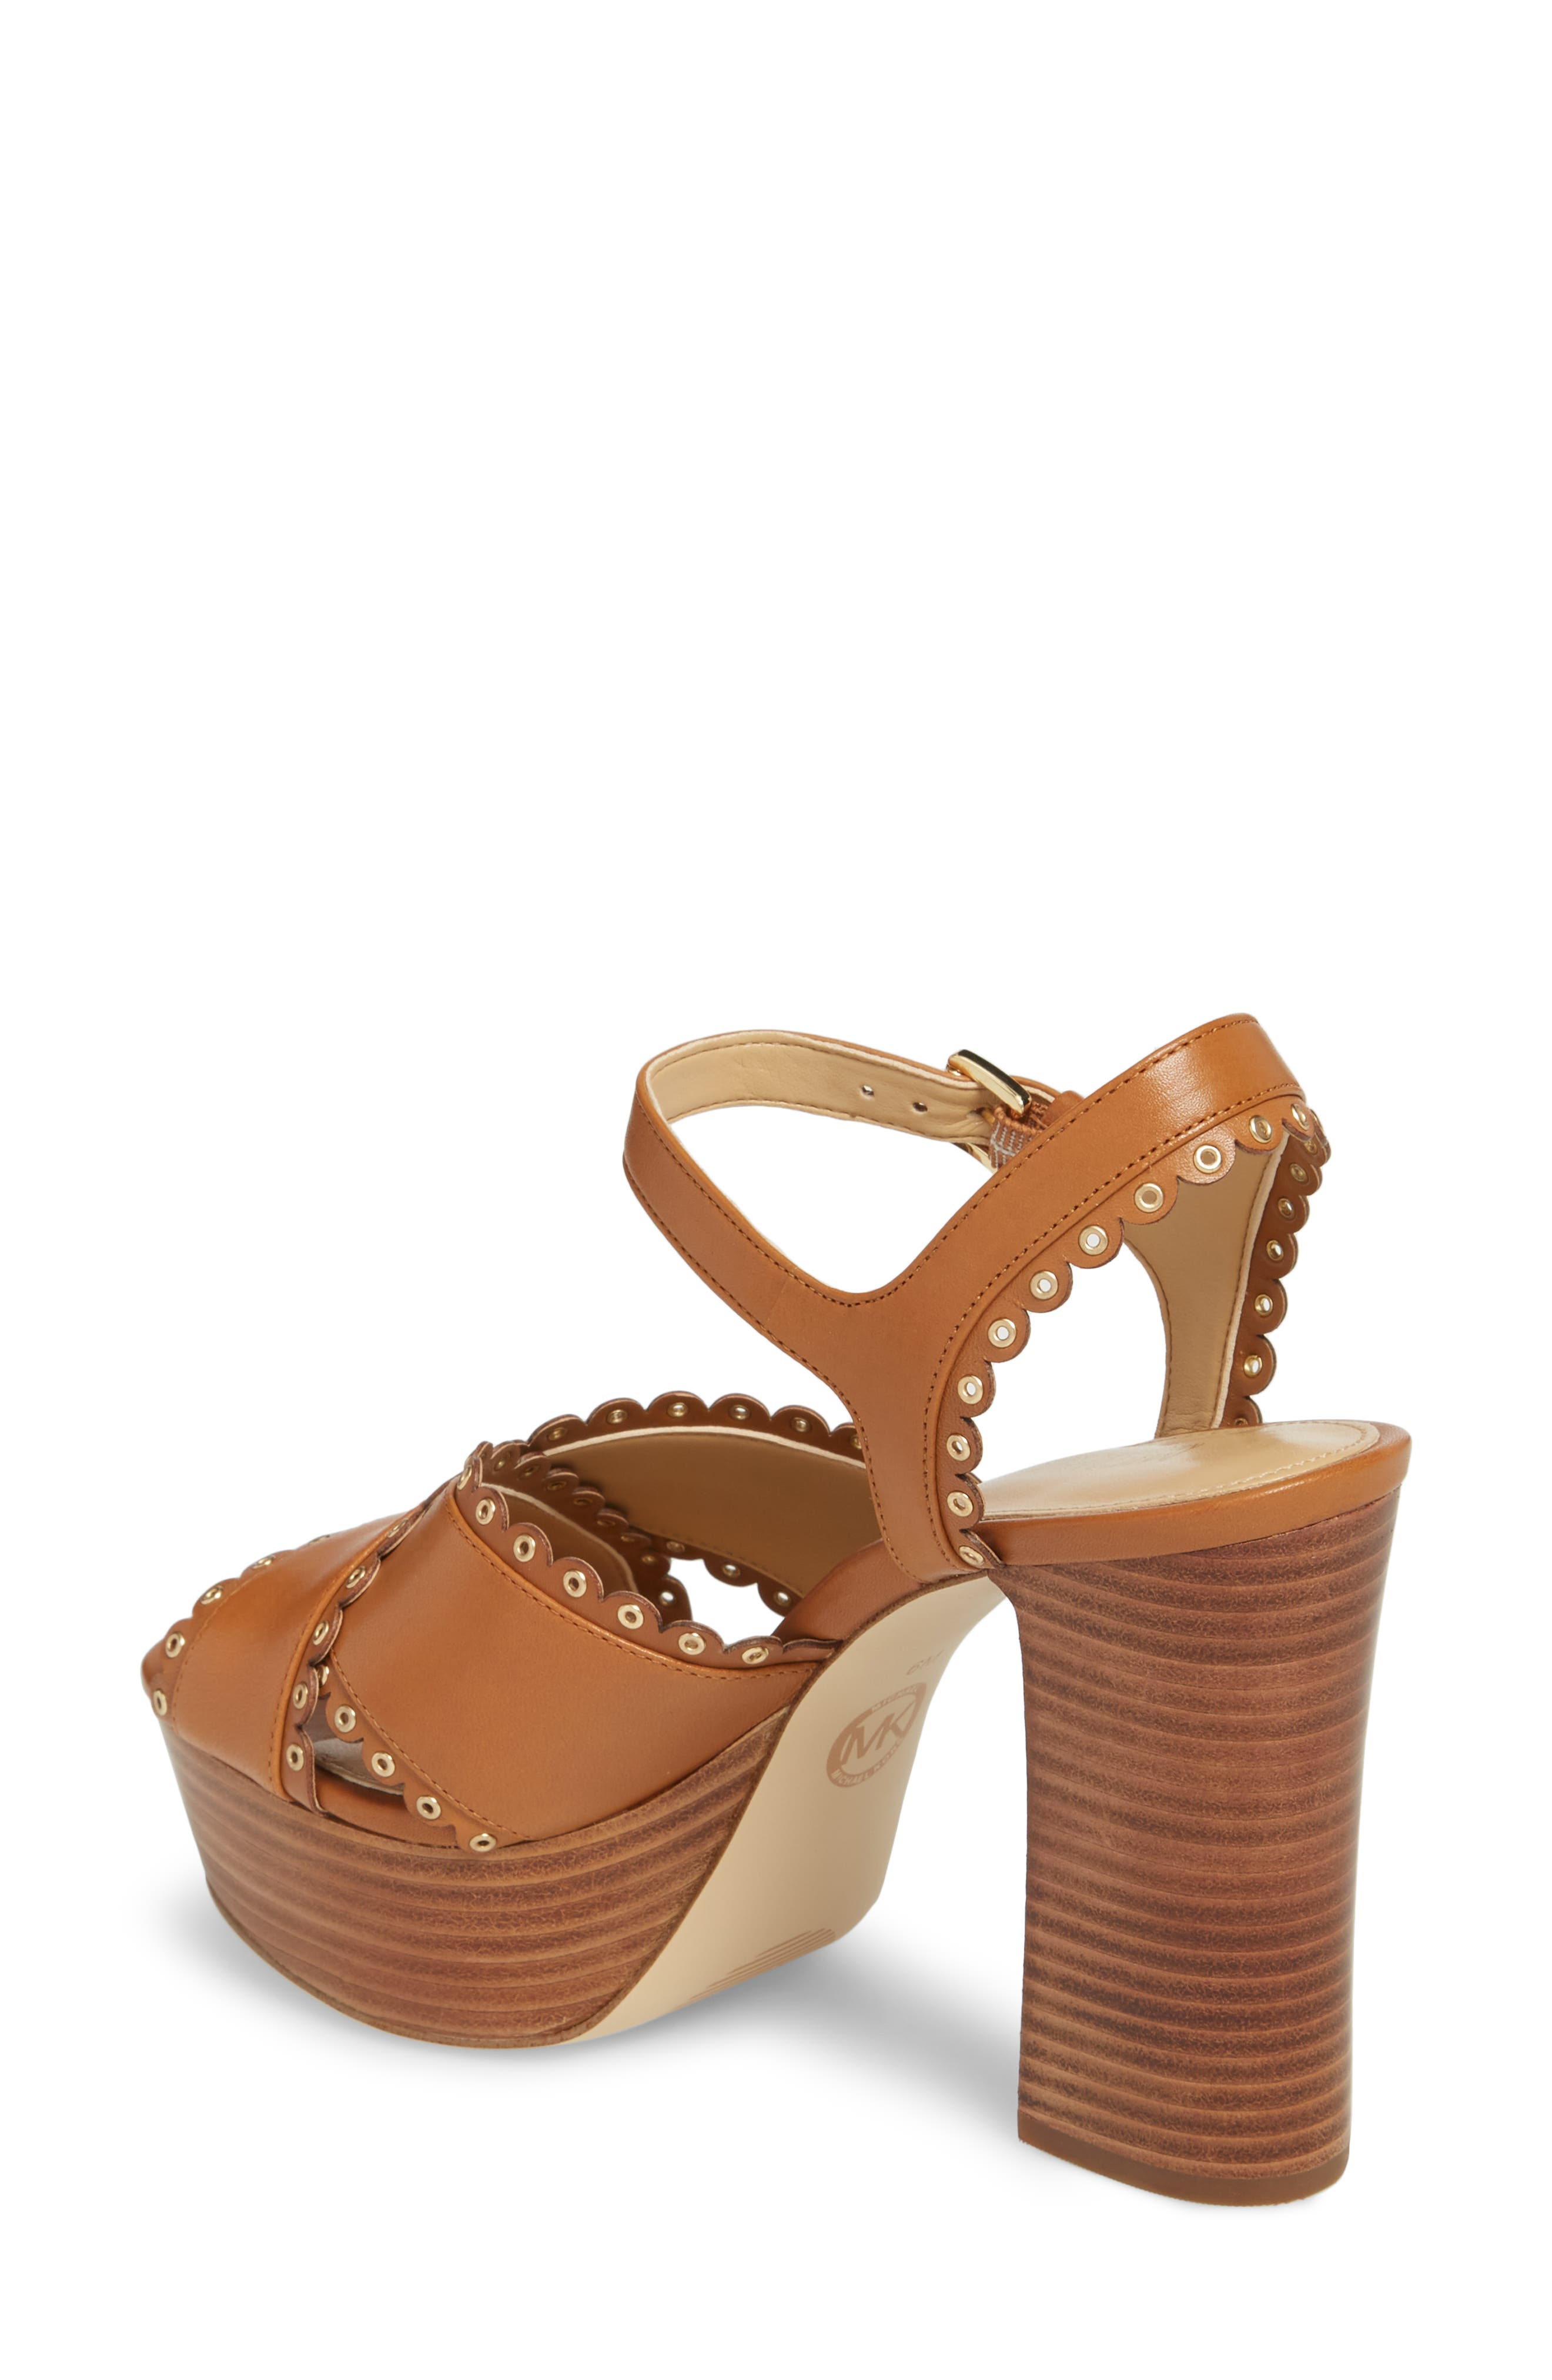 Jessie Platform Sandal,                             Alternate thumbnail 3, color,